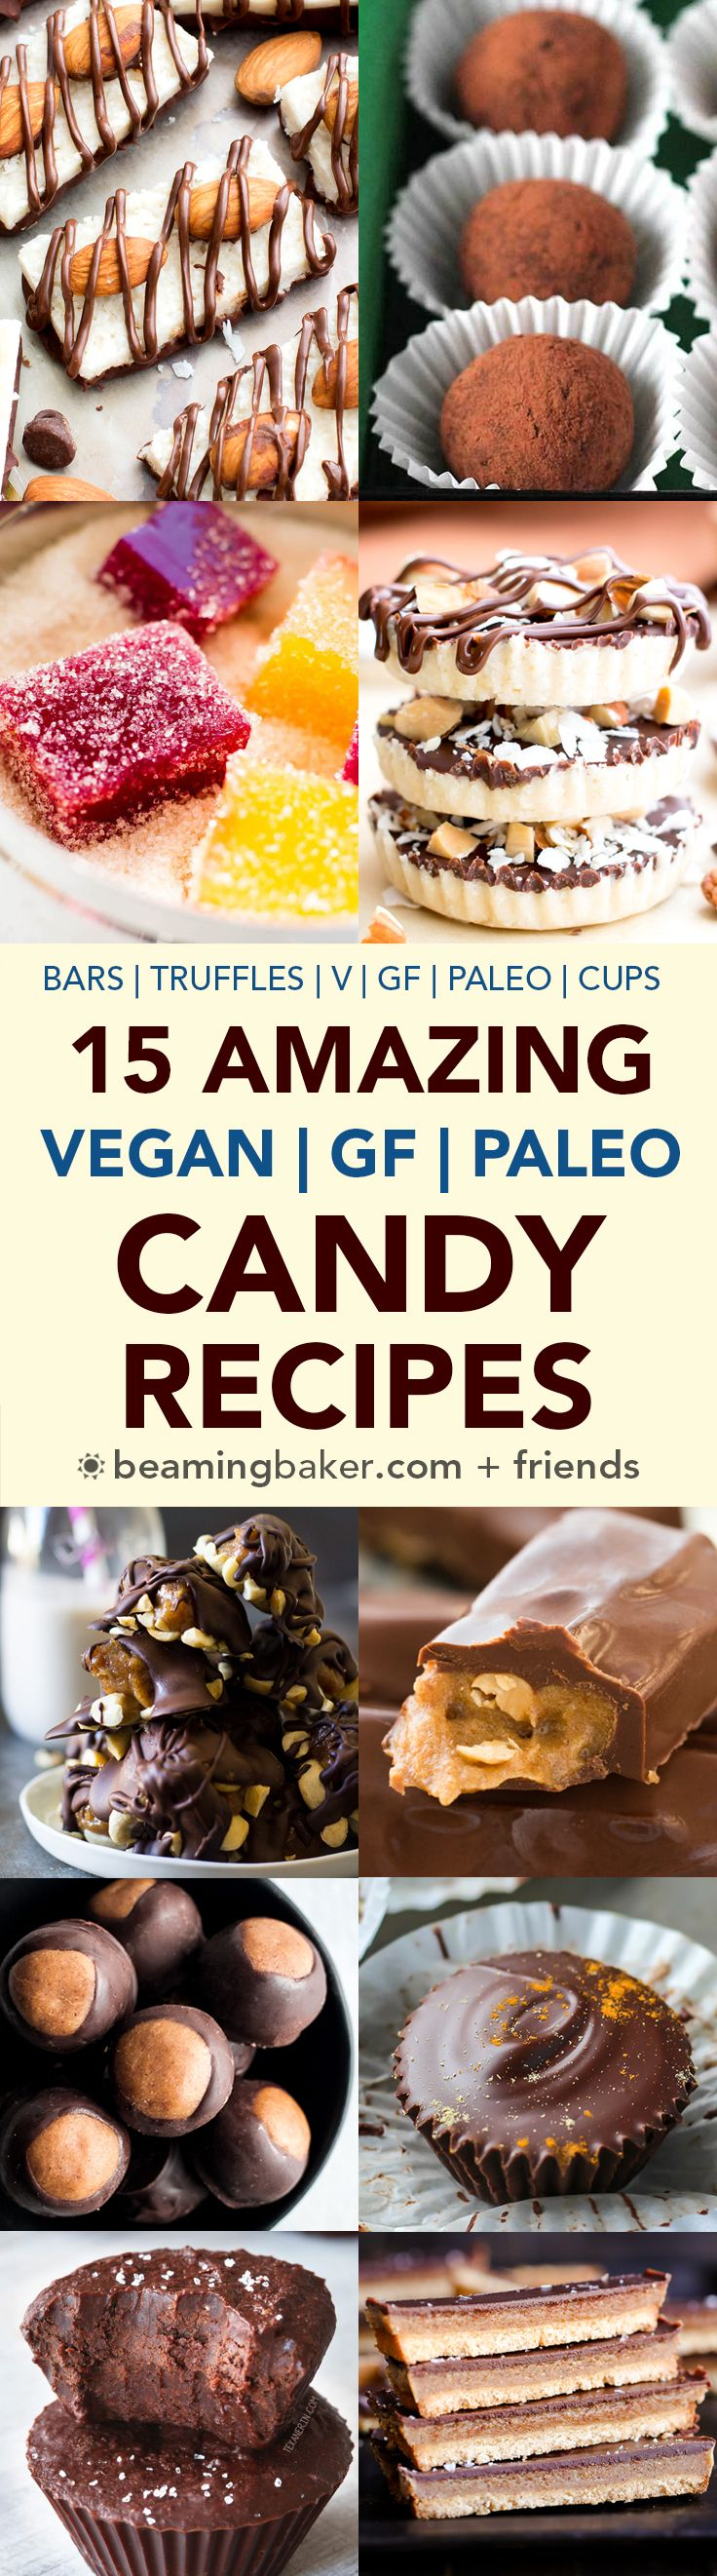 15 Amazing Paleo Gluten Free Vegan Candy Recipes: a sweet collection of 15 easy recipes for paleo, vegan, gluten recipes made with simple ingredients! #Paleo #Vegan #GlutenFree #DairyFree | BeamingBaker.com